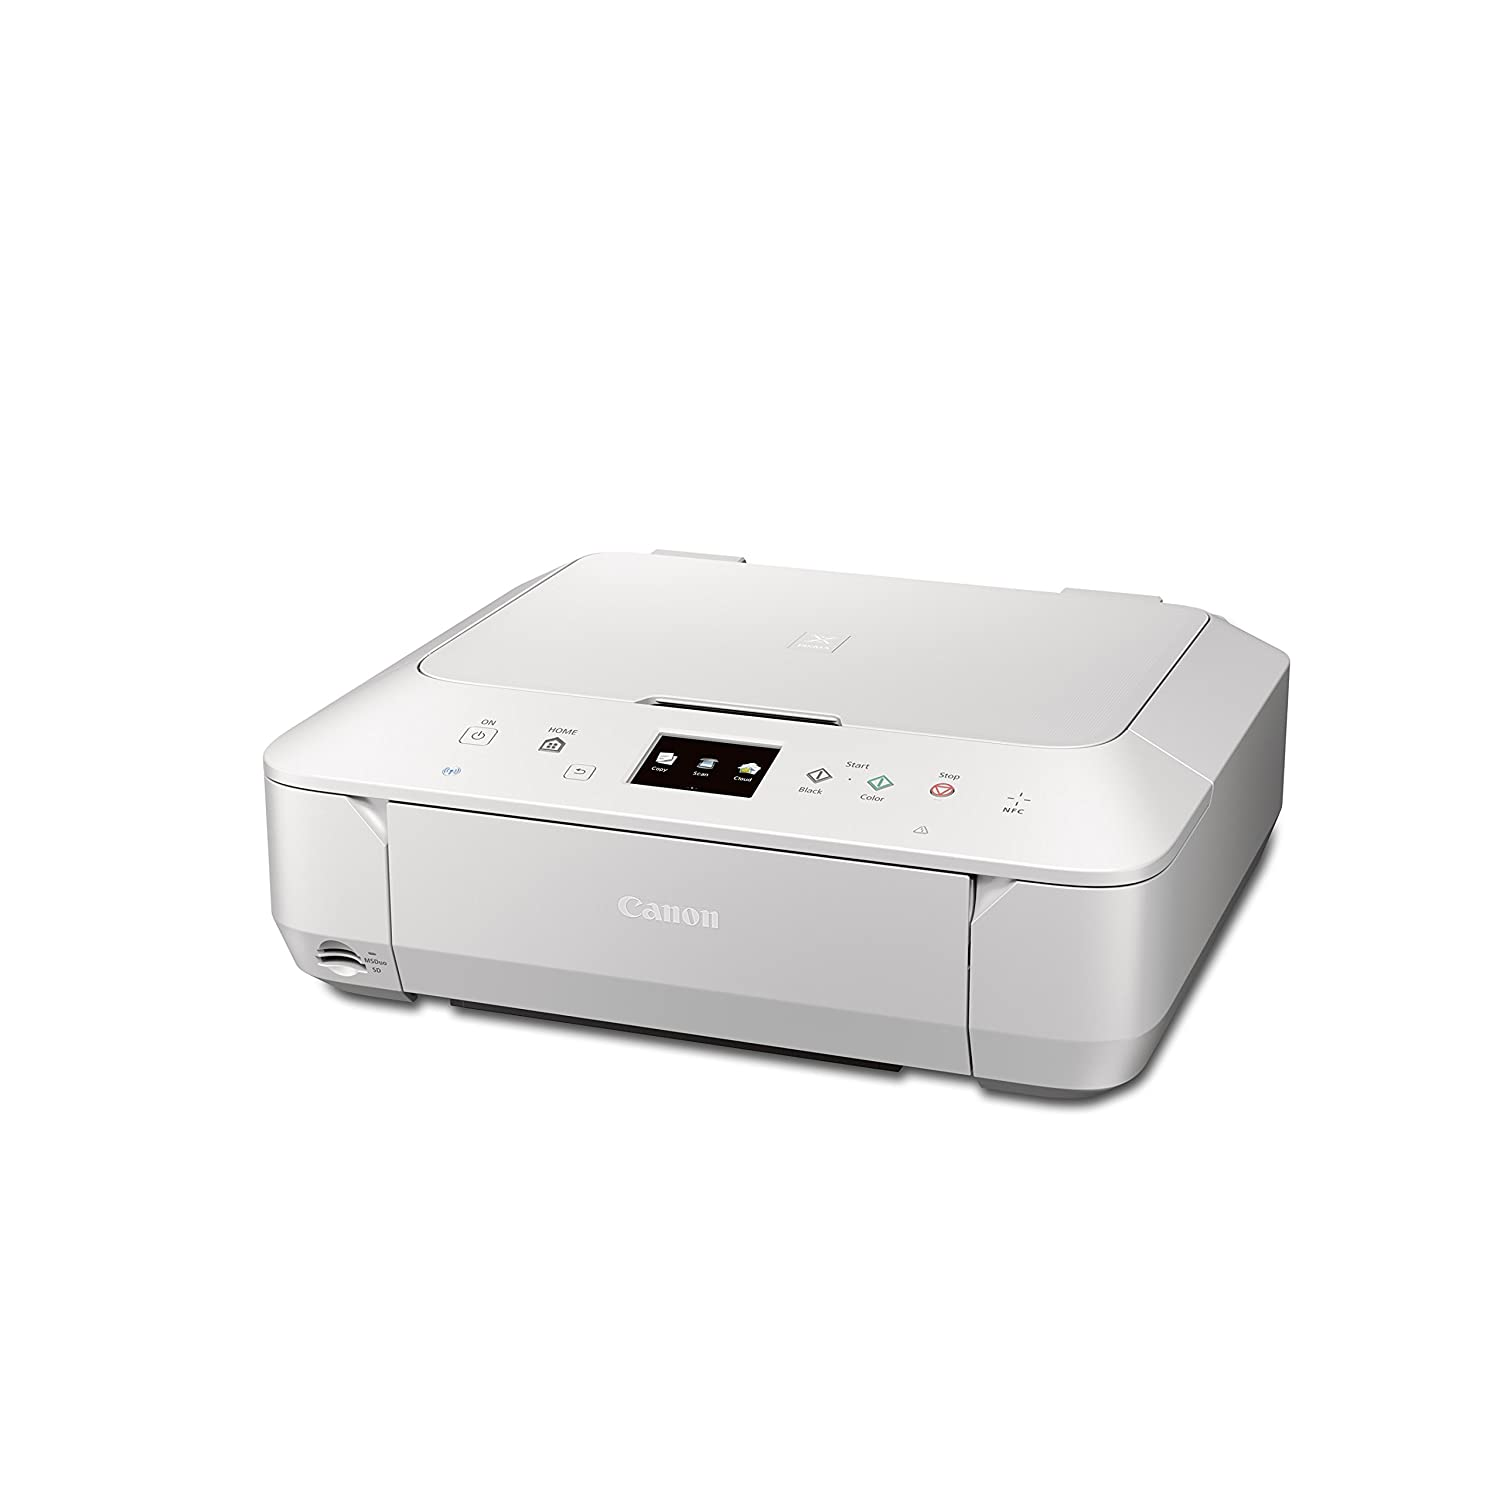 How to print from phone to canon wireless printer - Namco